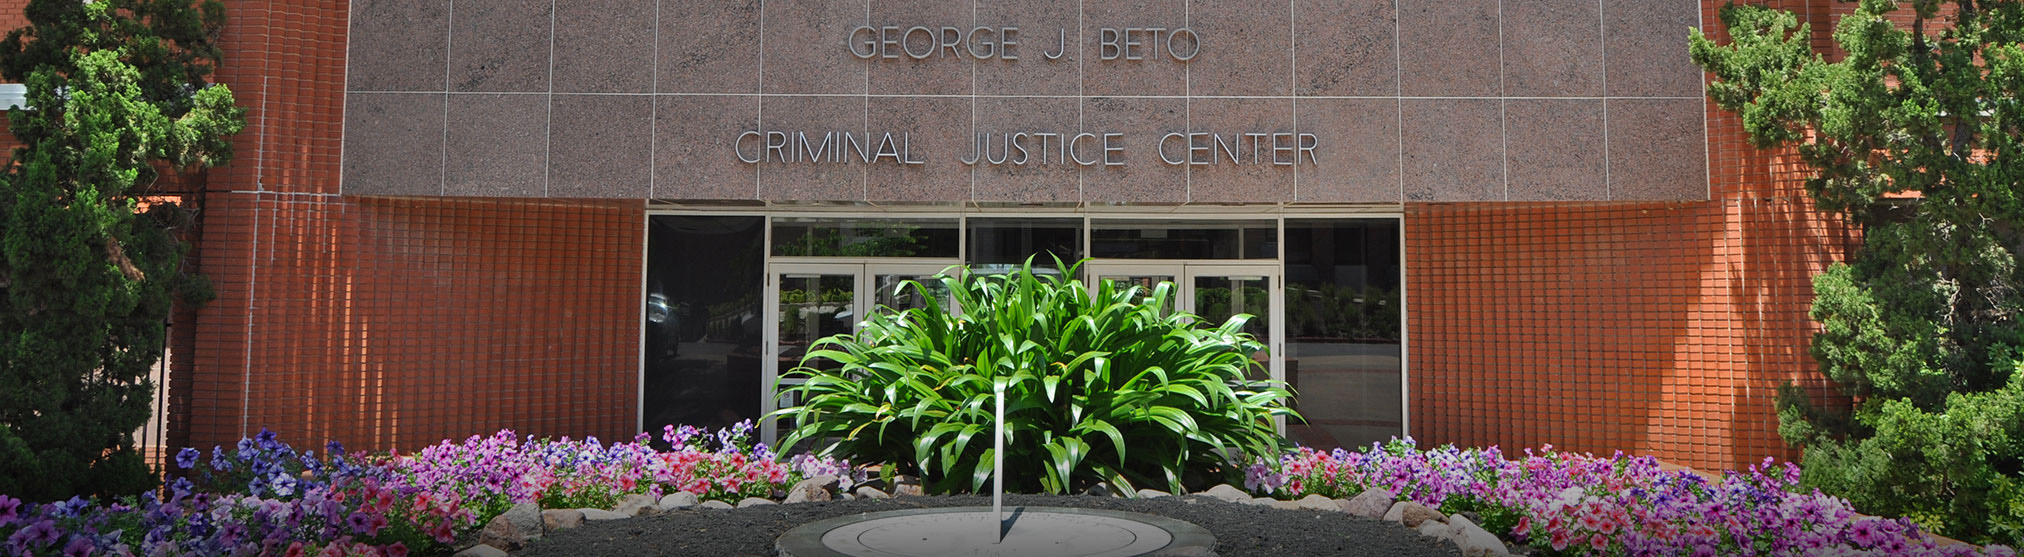 George J. Beto Criminal Justice Center